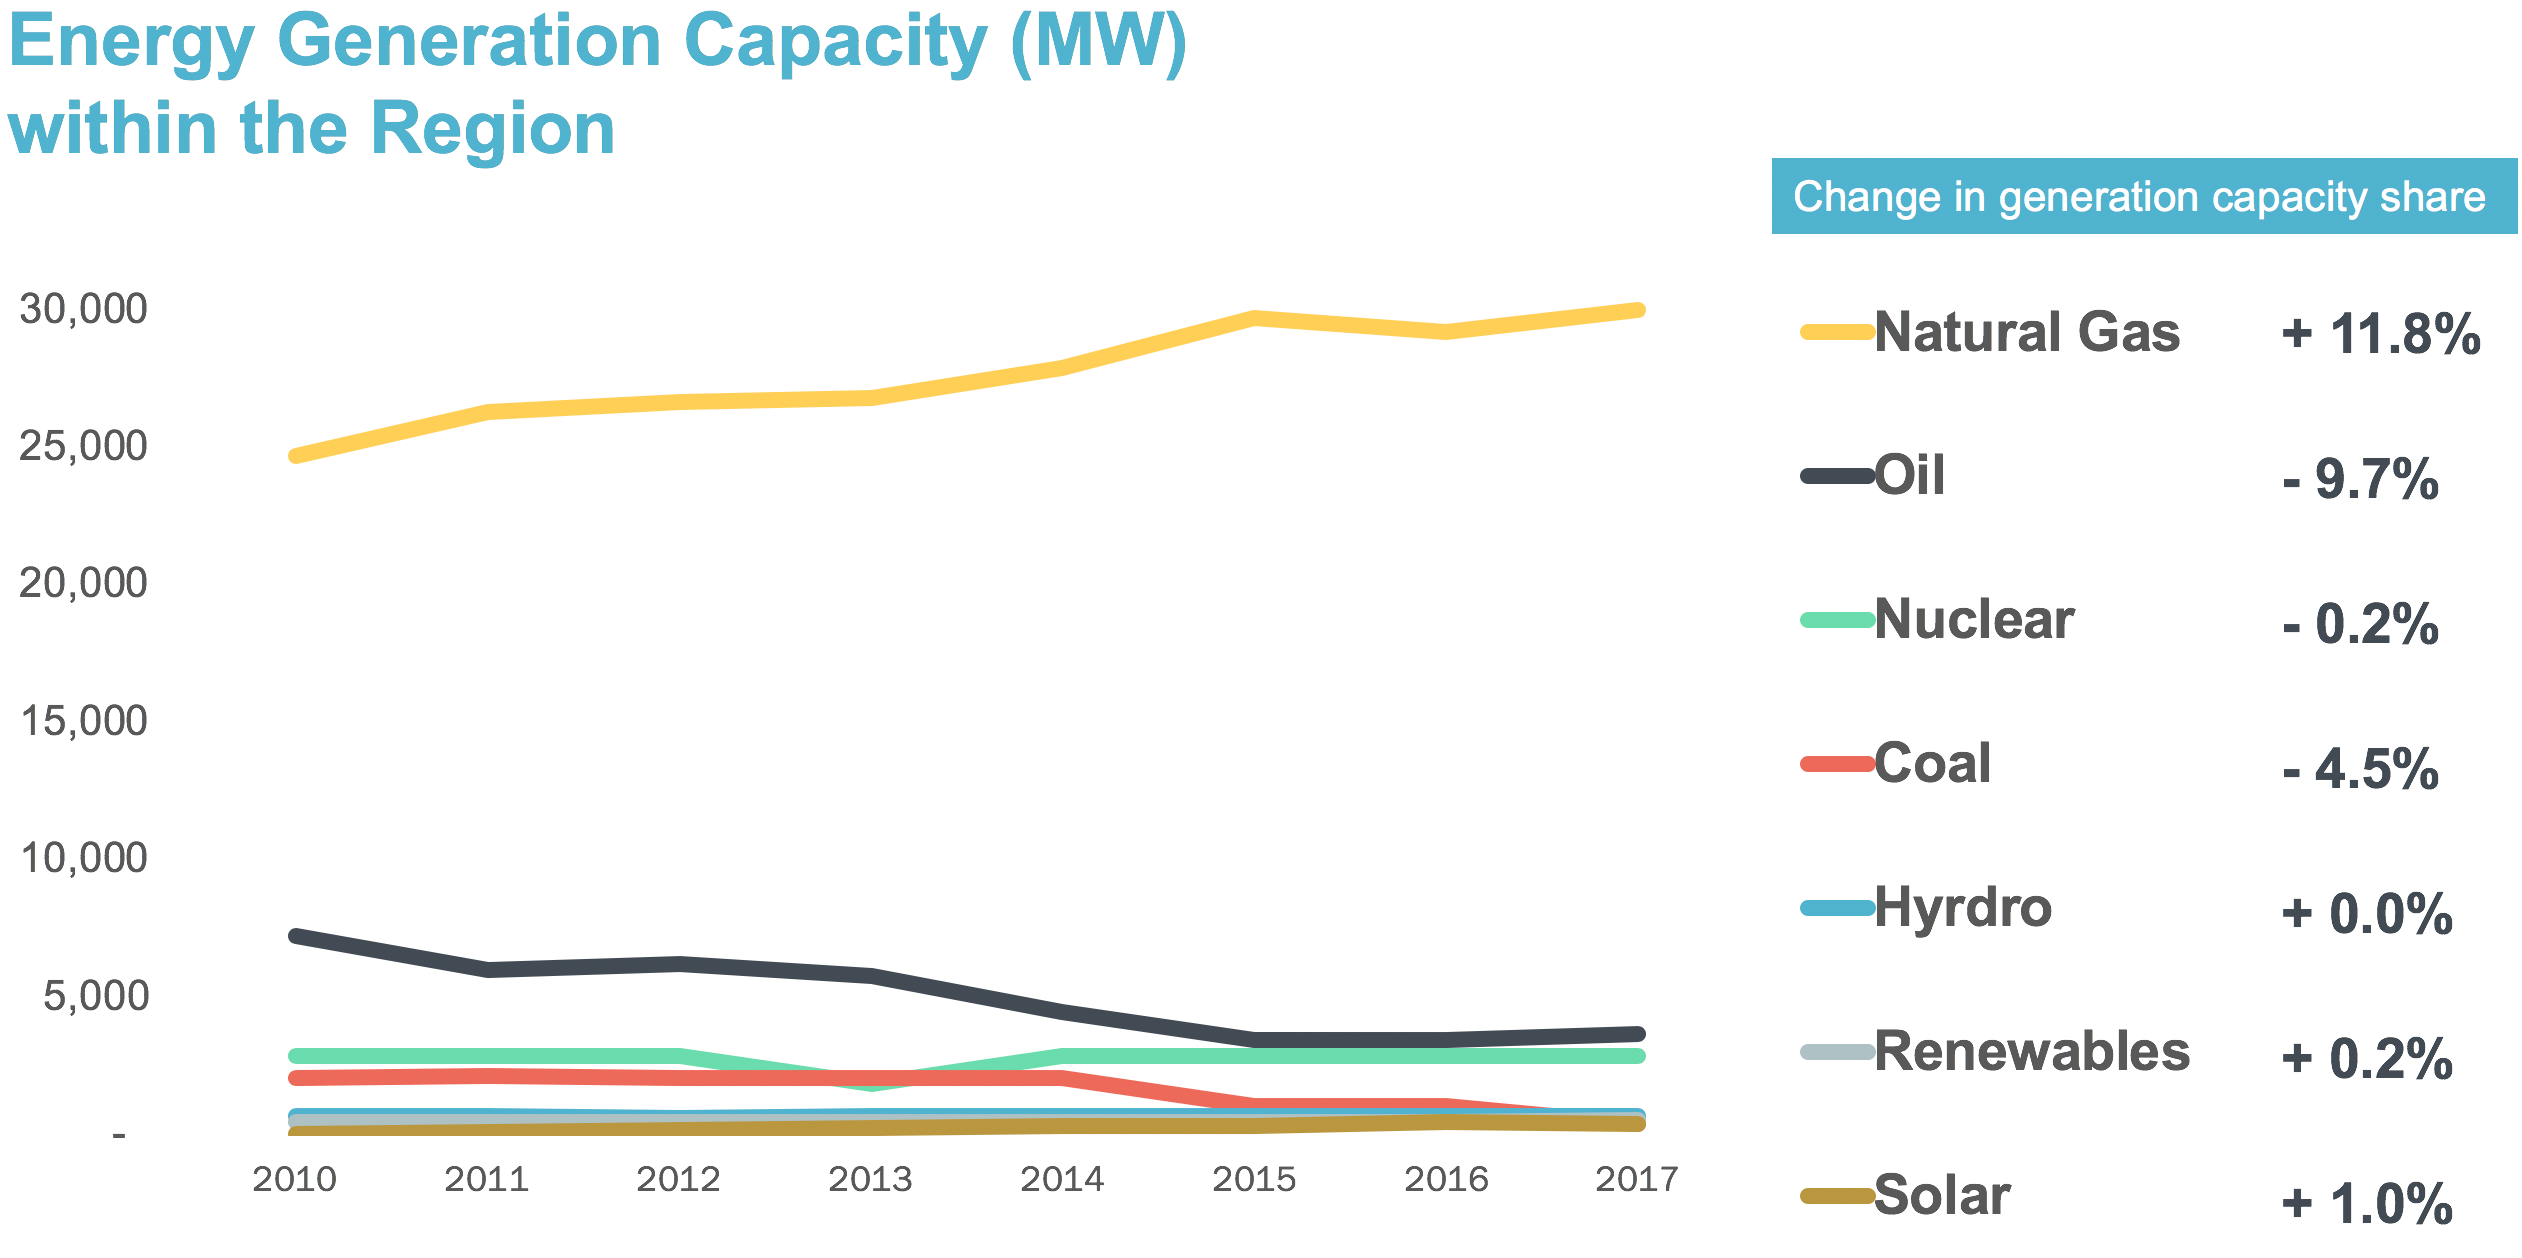 Chart: Energy Generation Capacity within the Region